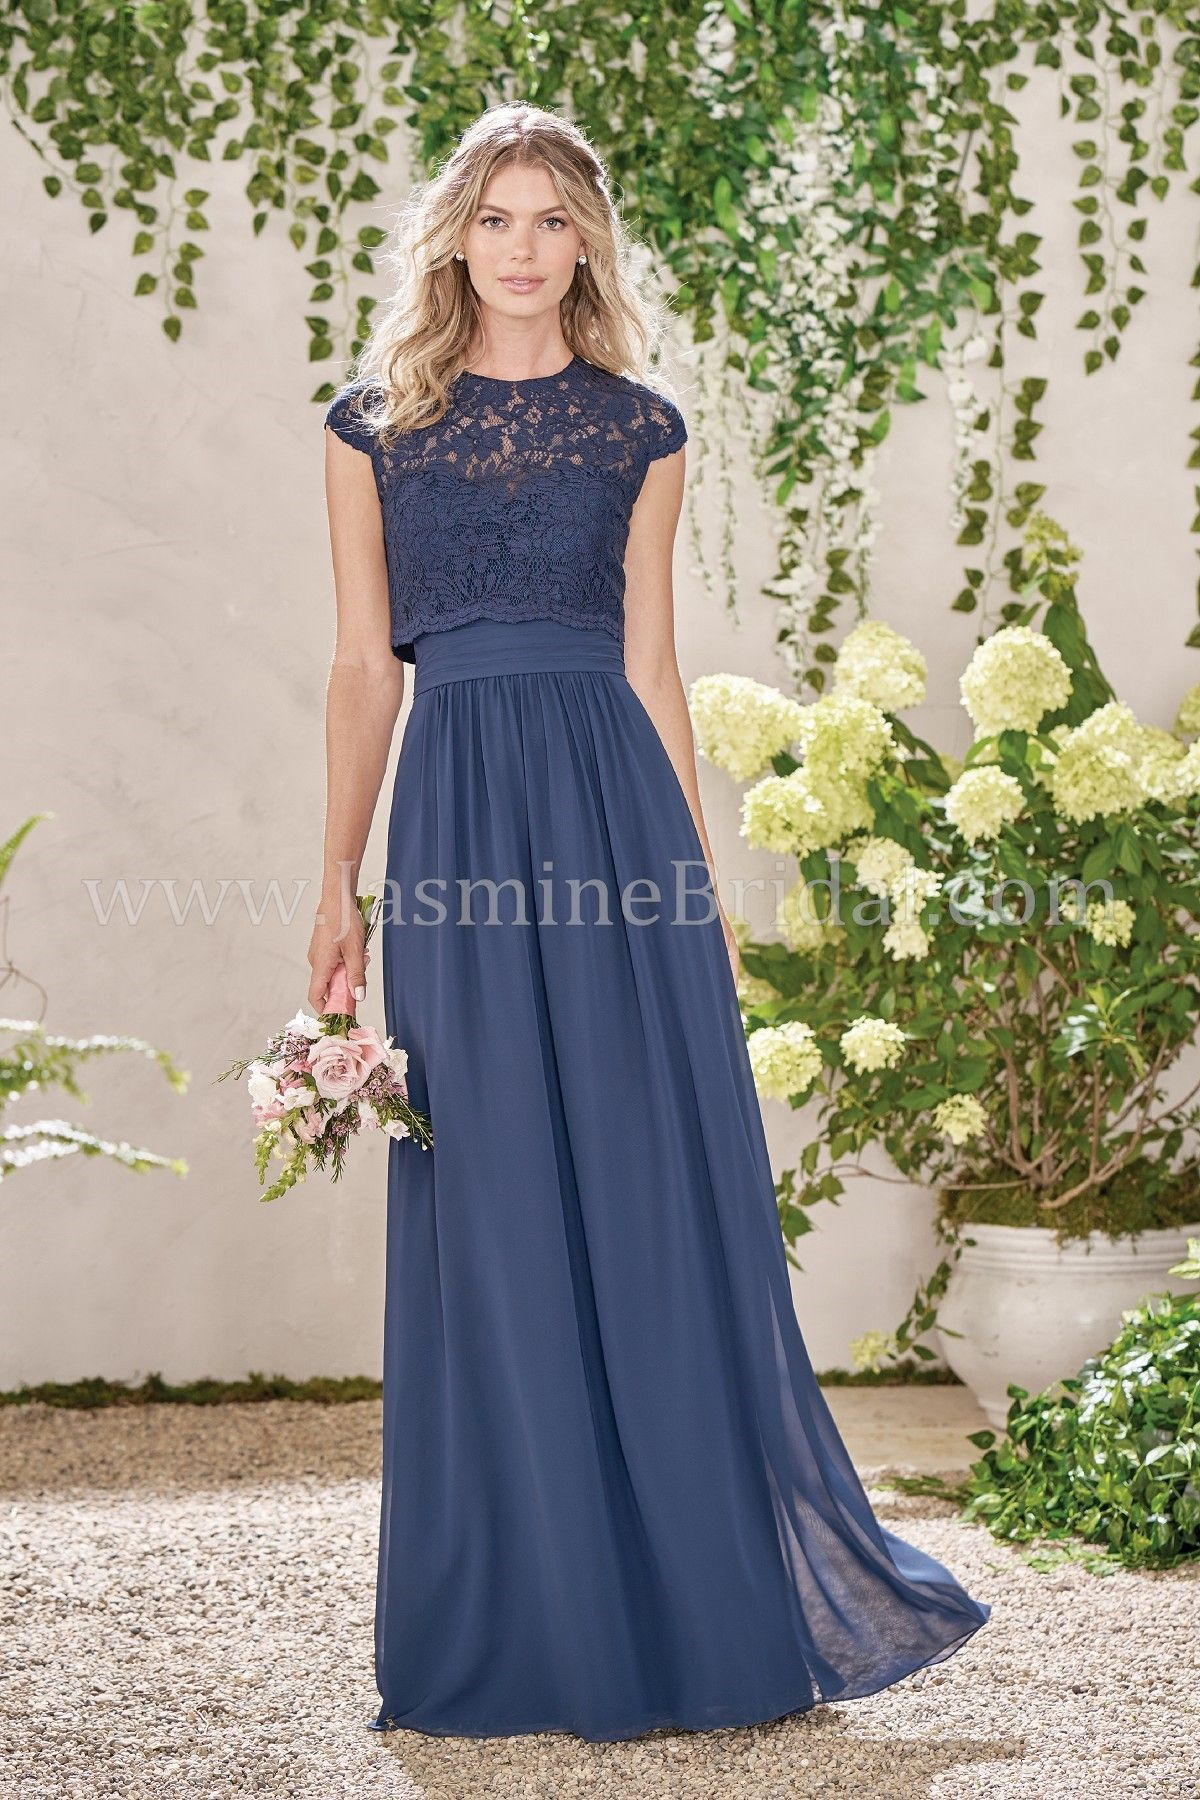 fe8d631dc6eb6 Jasmine Bridal Long Sweetheart Neckline Poly Chiffon Bridesmaid Dress with  Lace Top